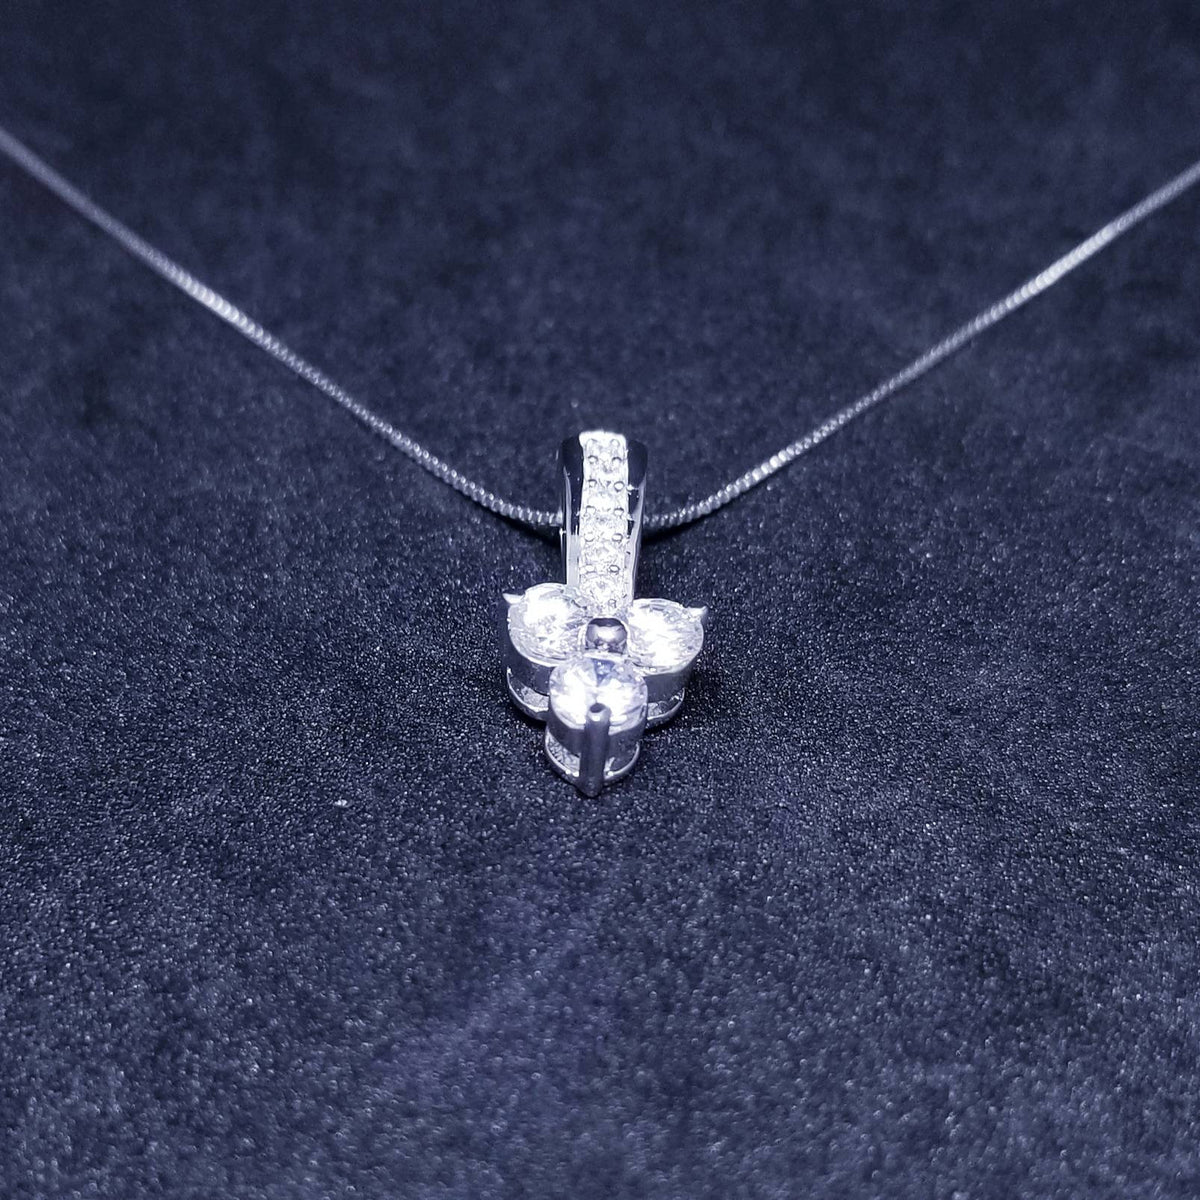 New 14k White Gold On 925 Sterling Silver Three Petals Flower CZ Stones Pendant Free Chain